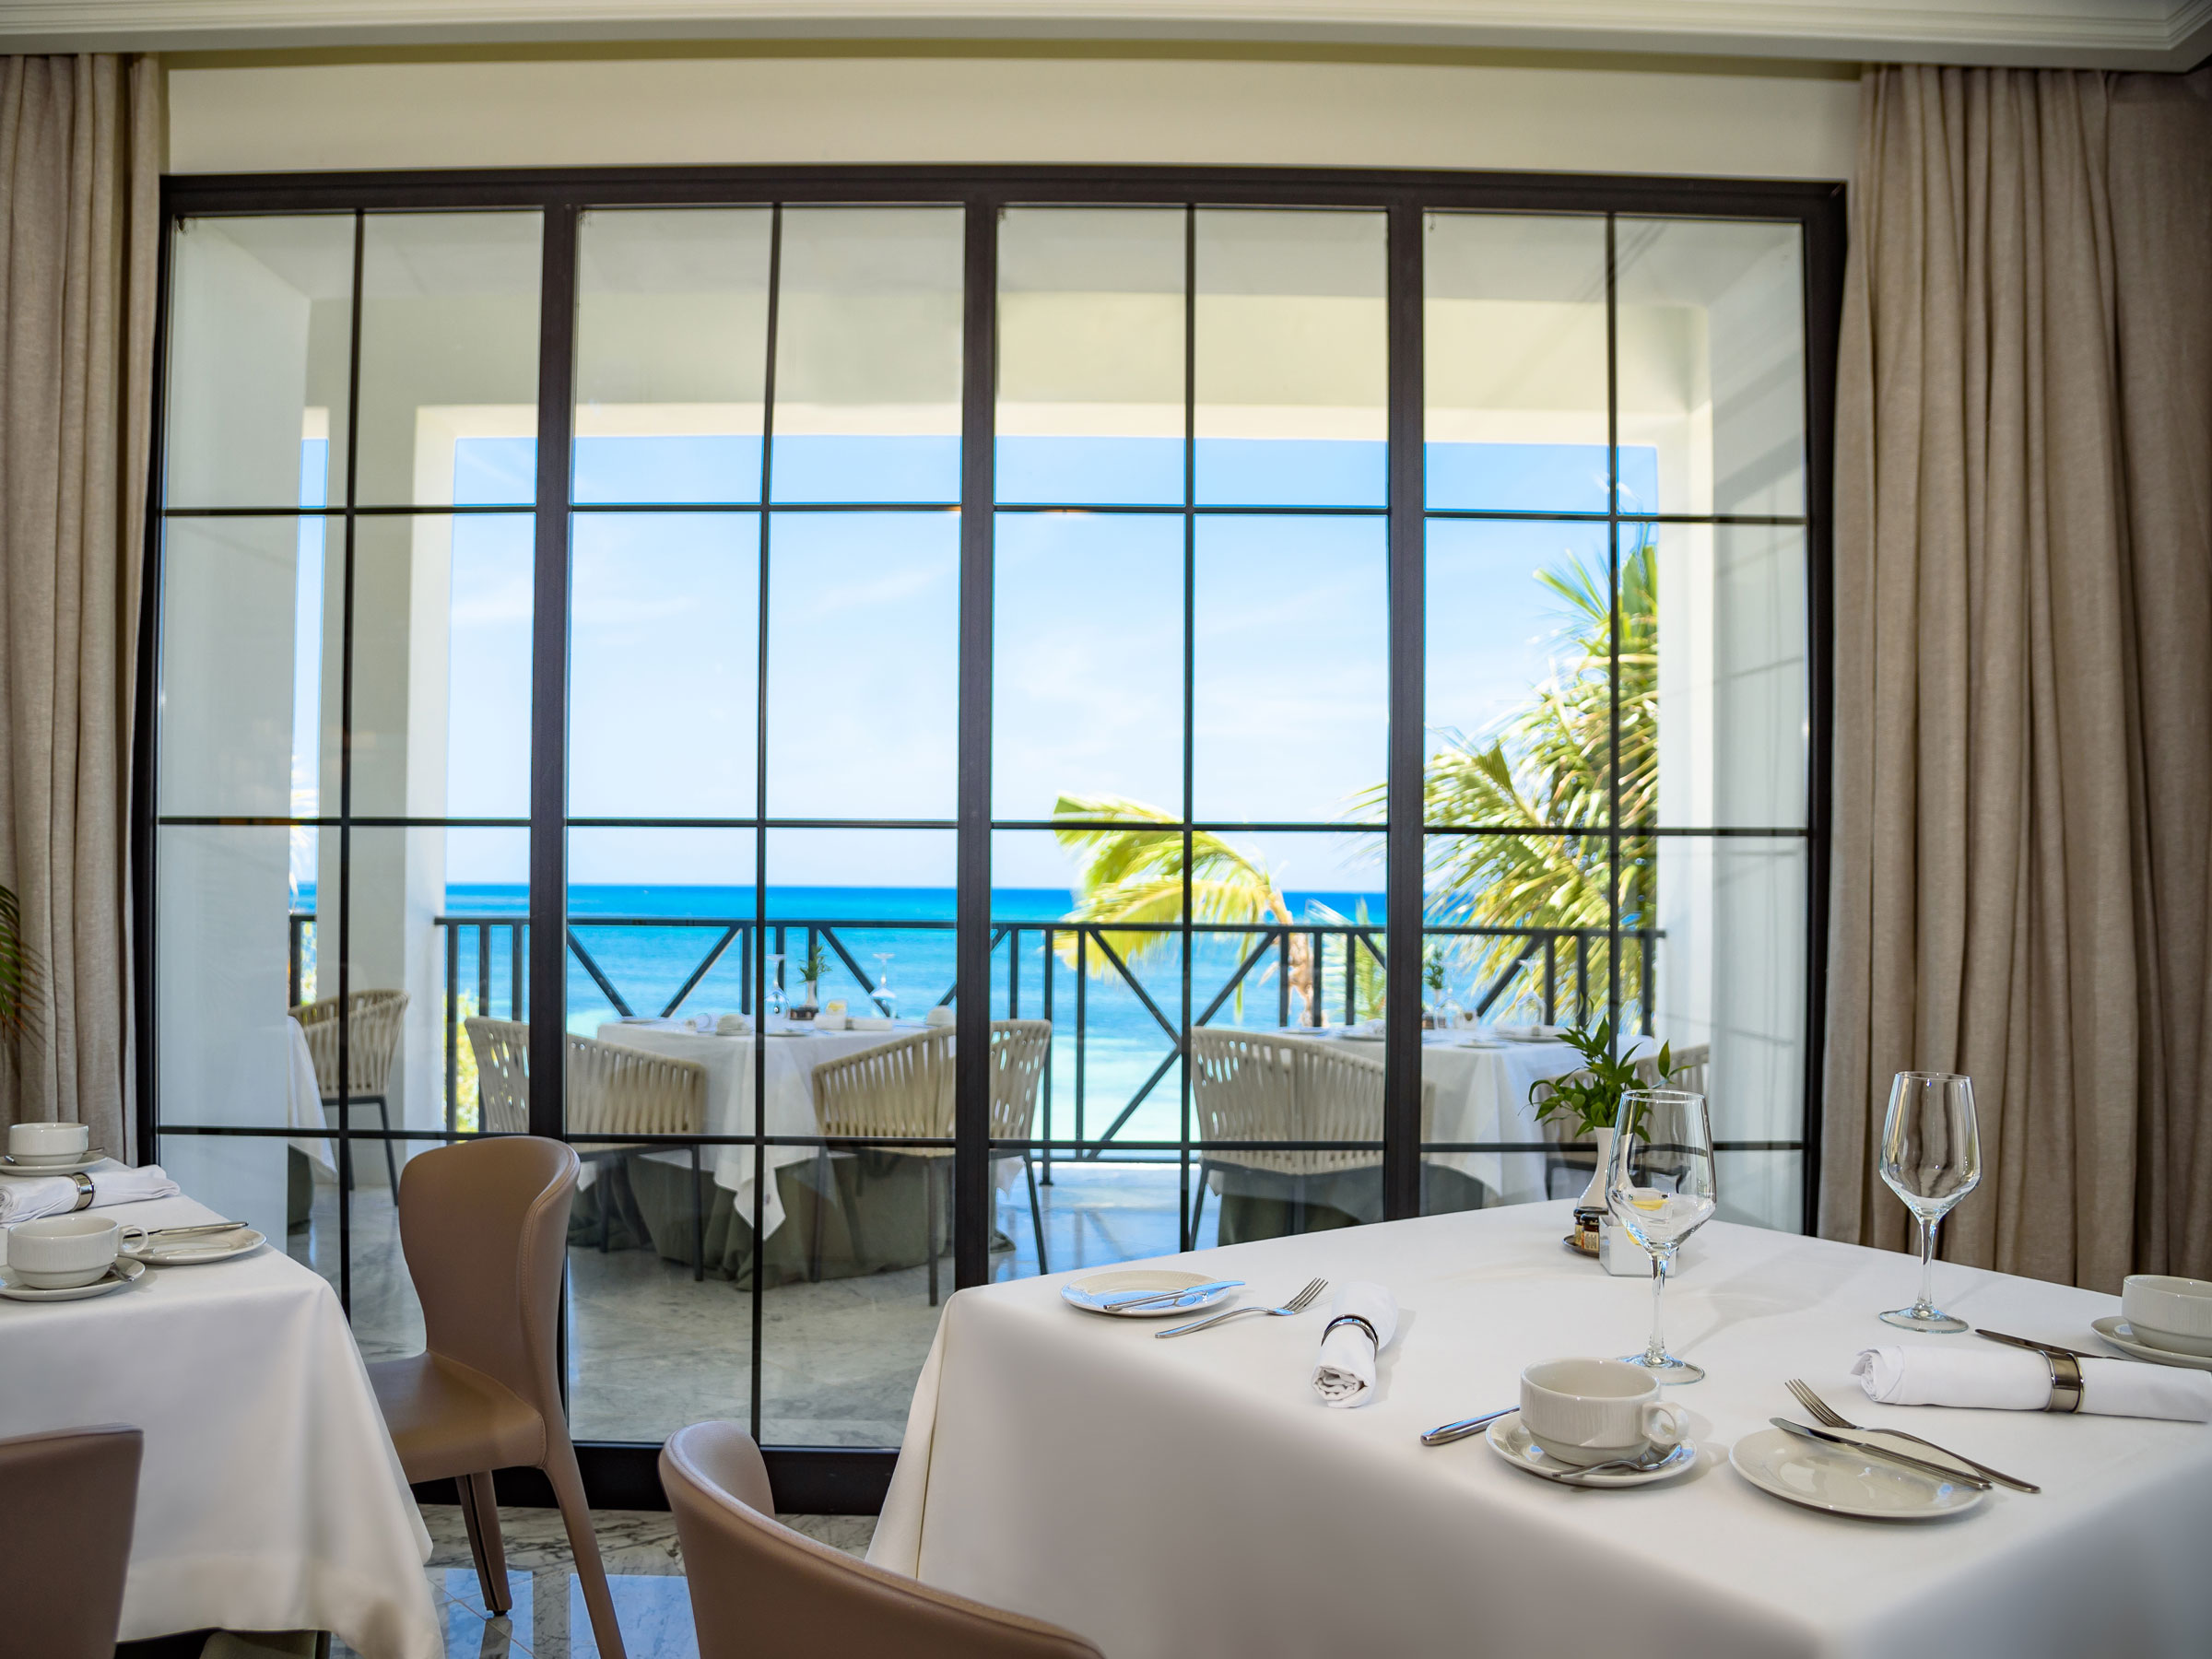 Reserve en el Excellence Club para Disfrutar Restaurantes Exclusivos en Excellence Oyster Bay